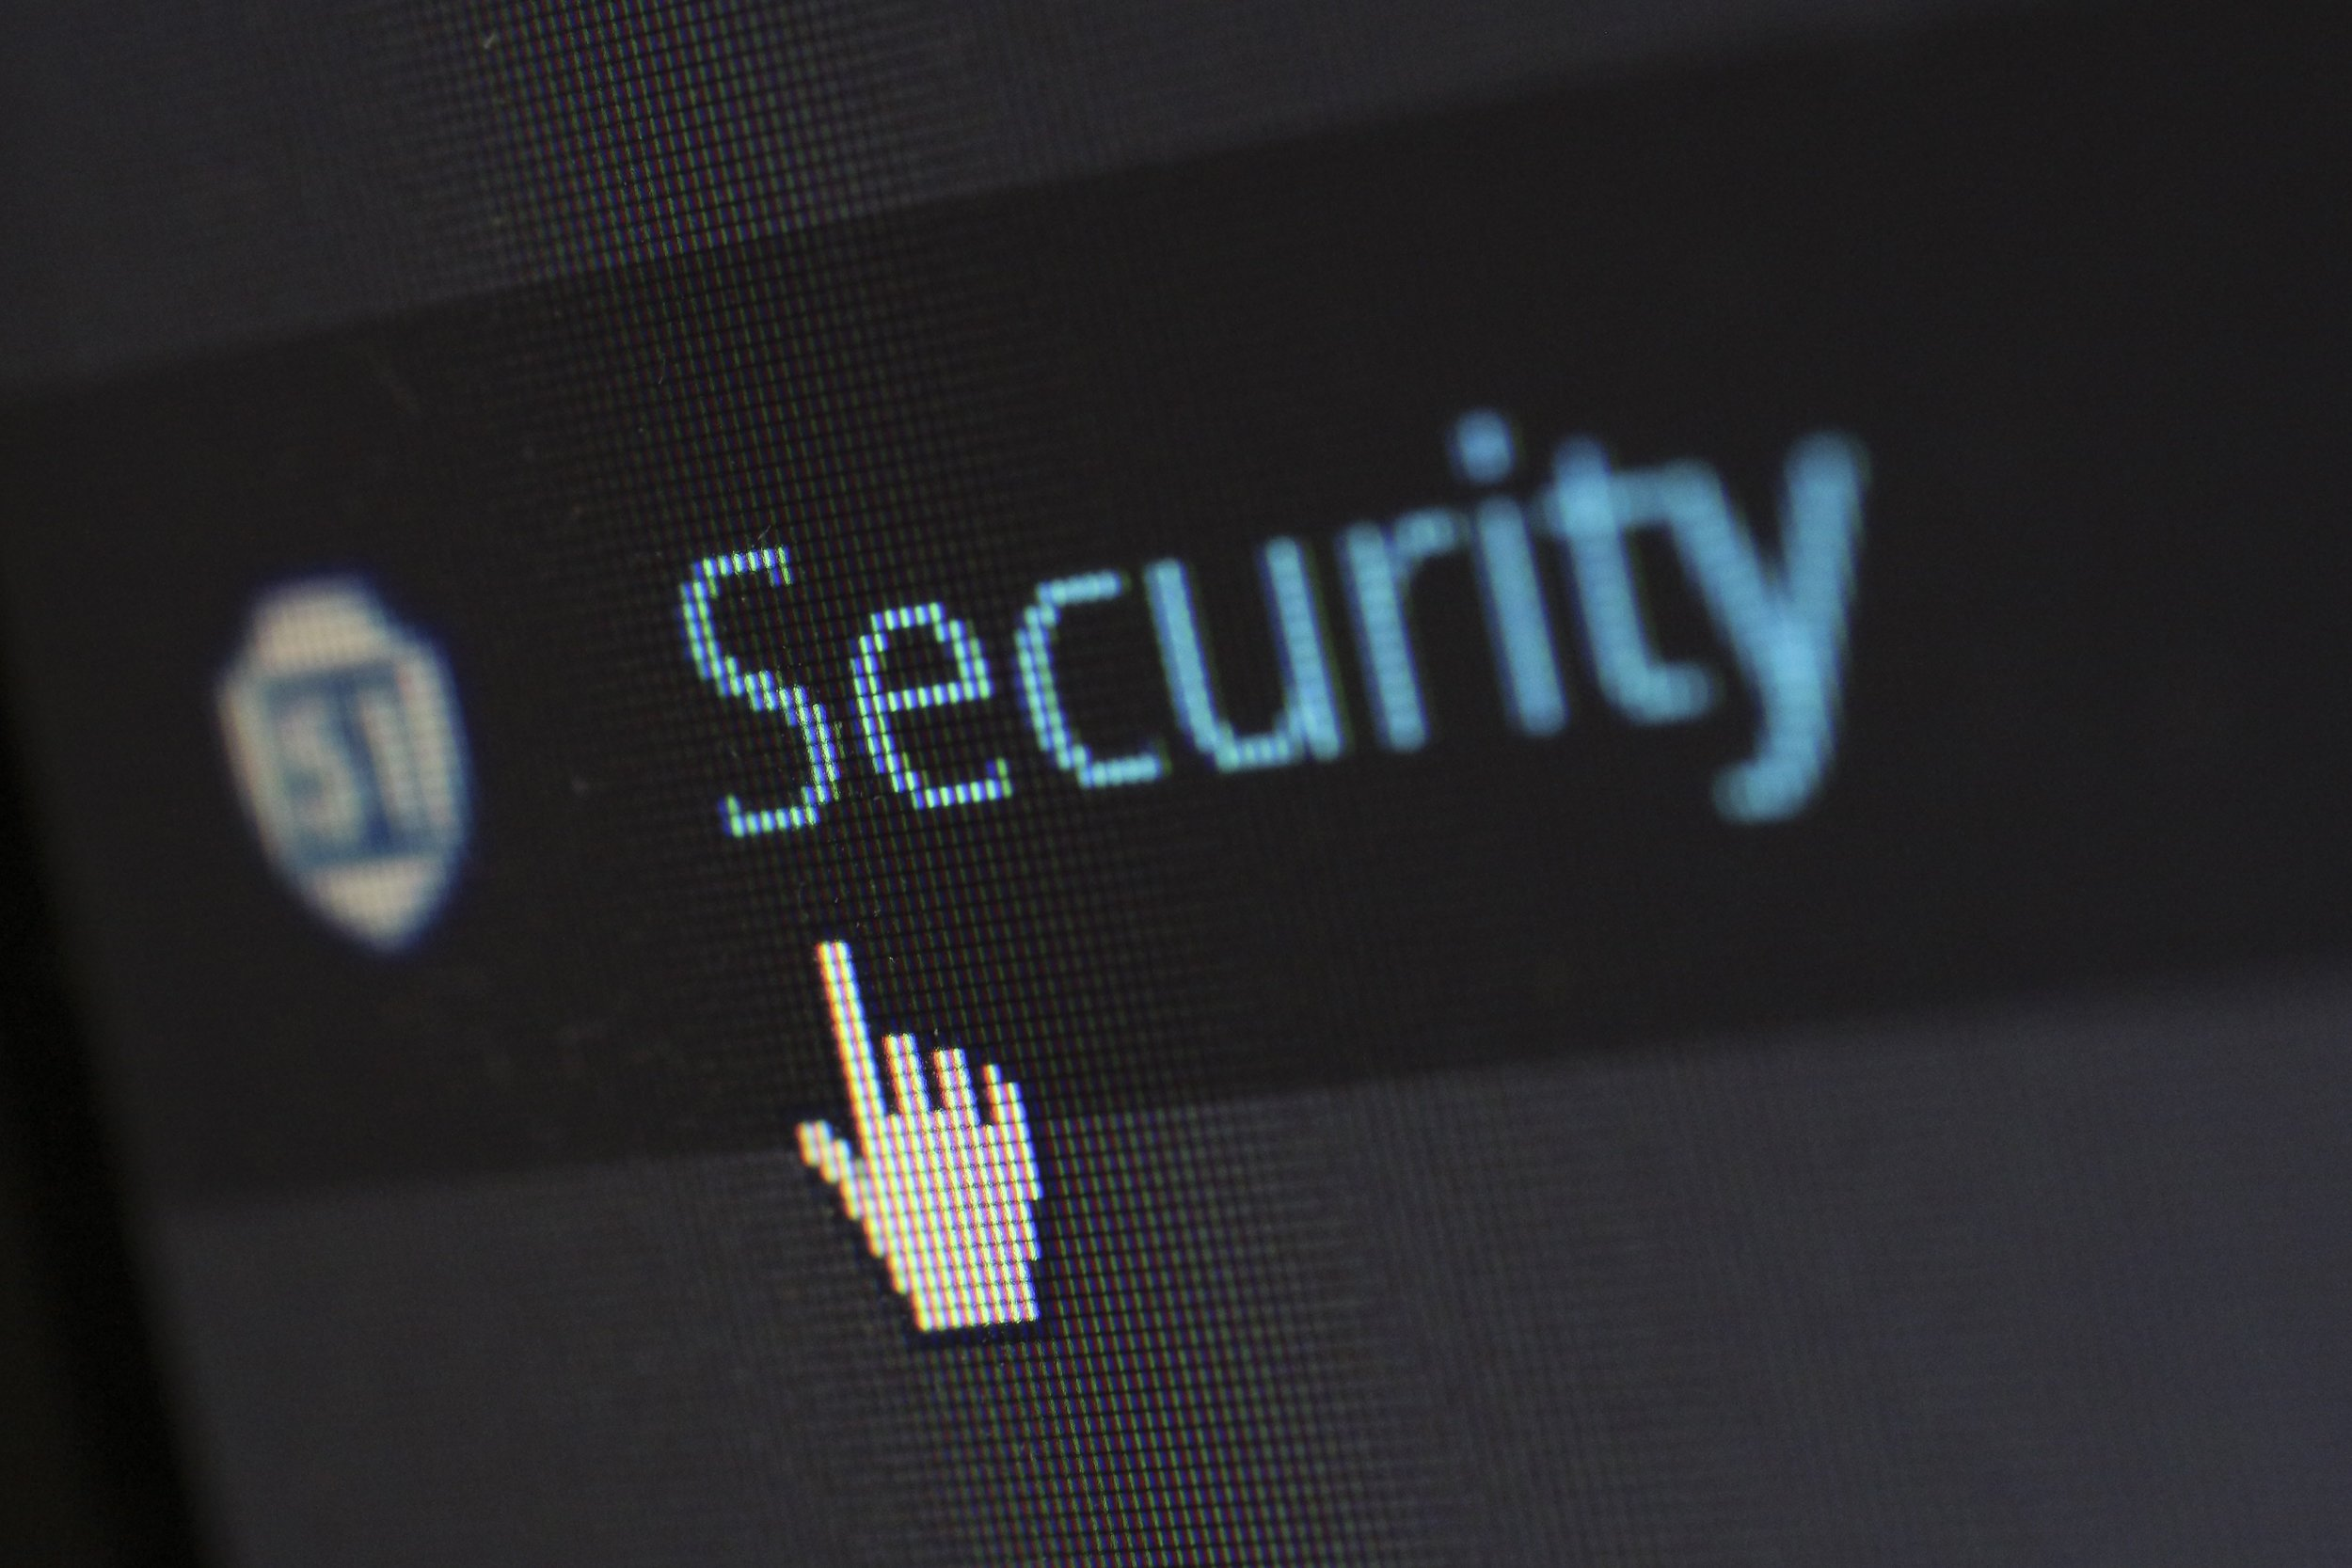 cyber-security-cybersecurity-device-60504.jpg